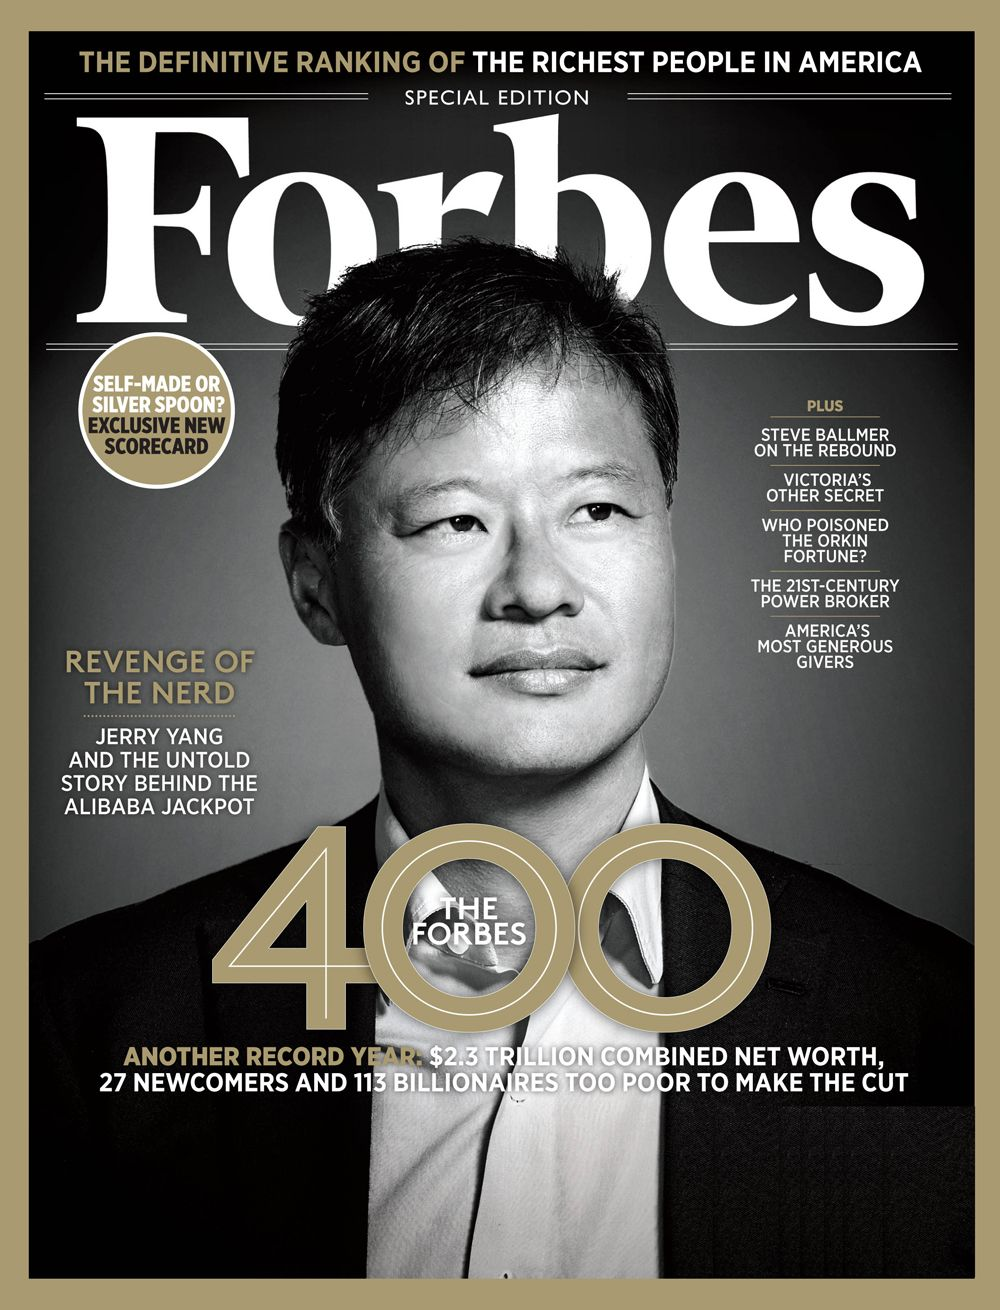 The Forbes 400 - The Richest People in America | Forbes Magazine ...